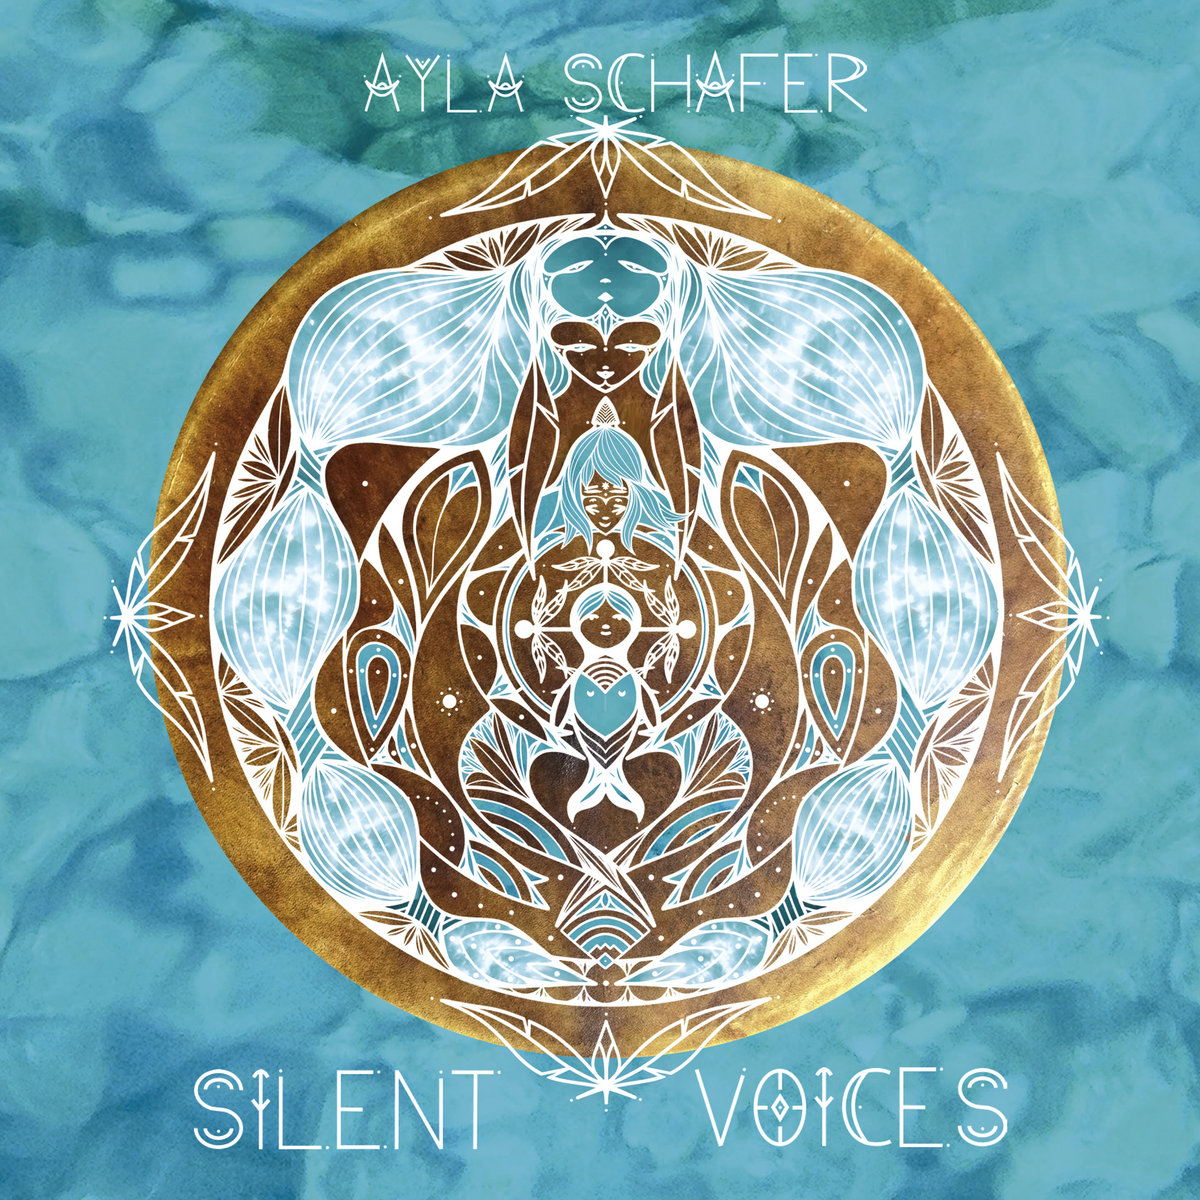 NEW MUSIC: Silent Voices By Ayla Schafer (New Album)